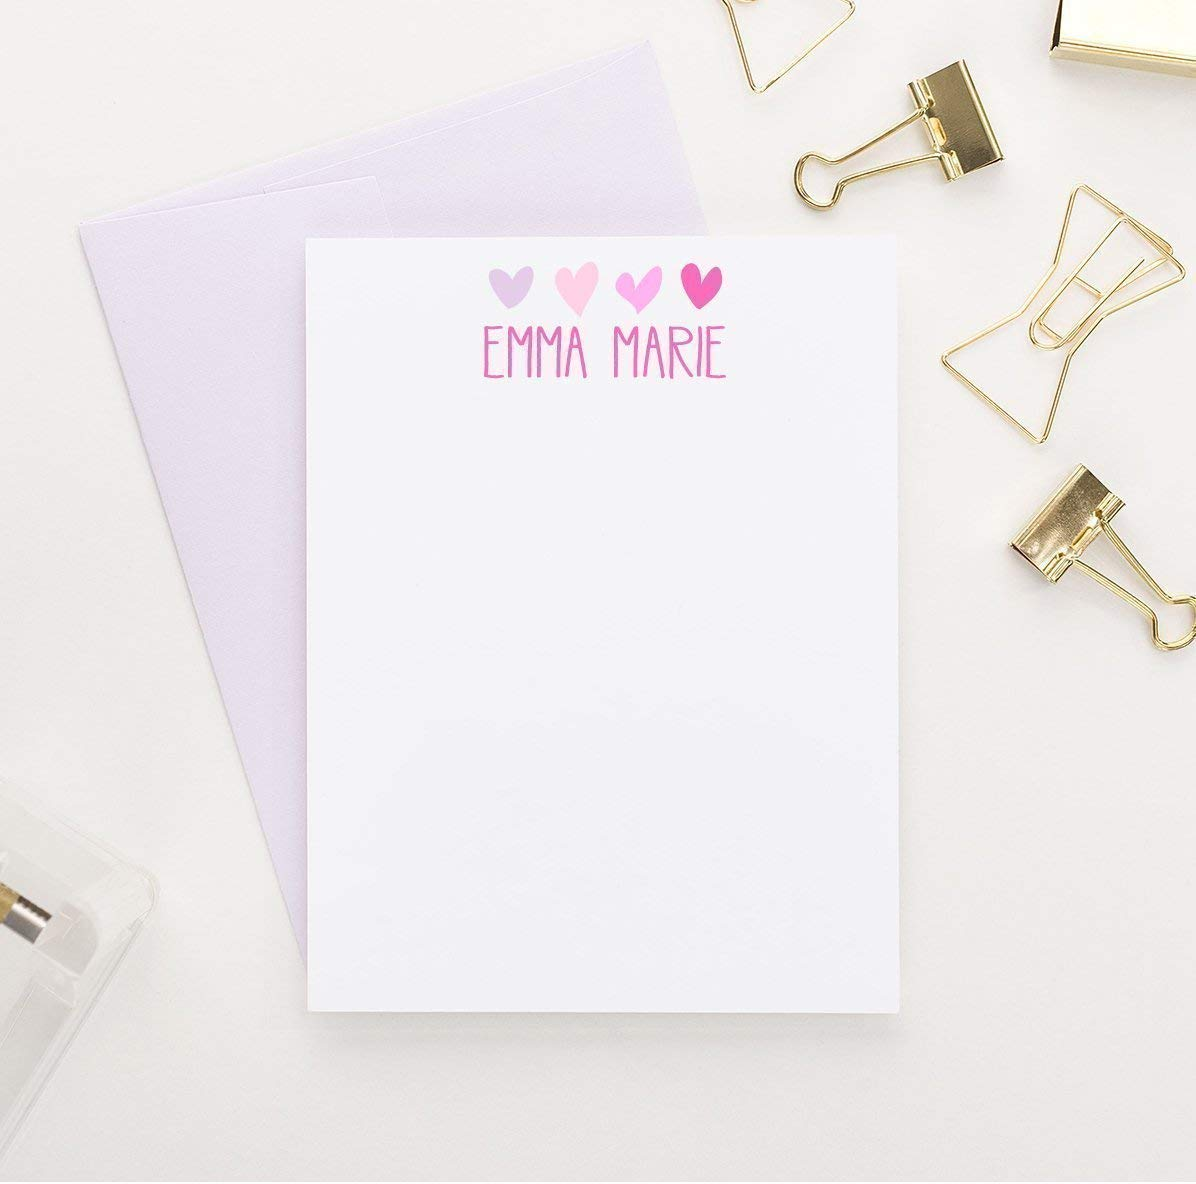 Personalized Stationery for Girls, Girls Personalized Stationery Set